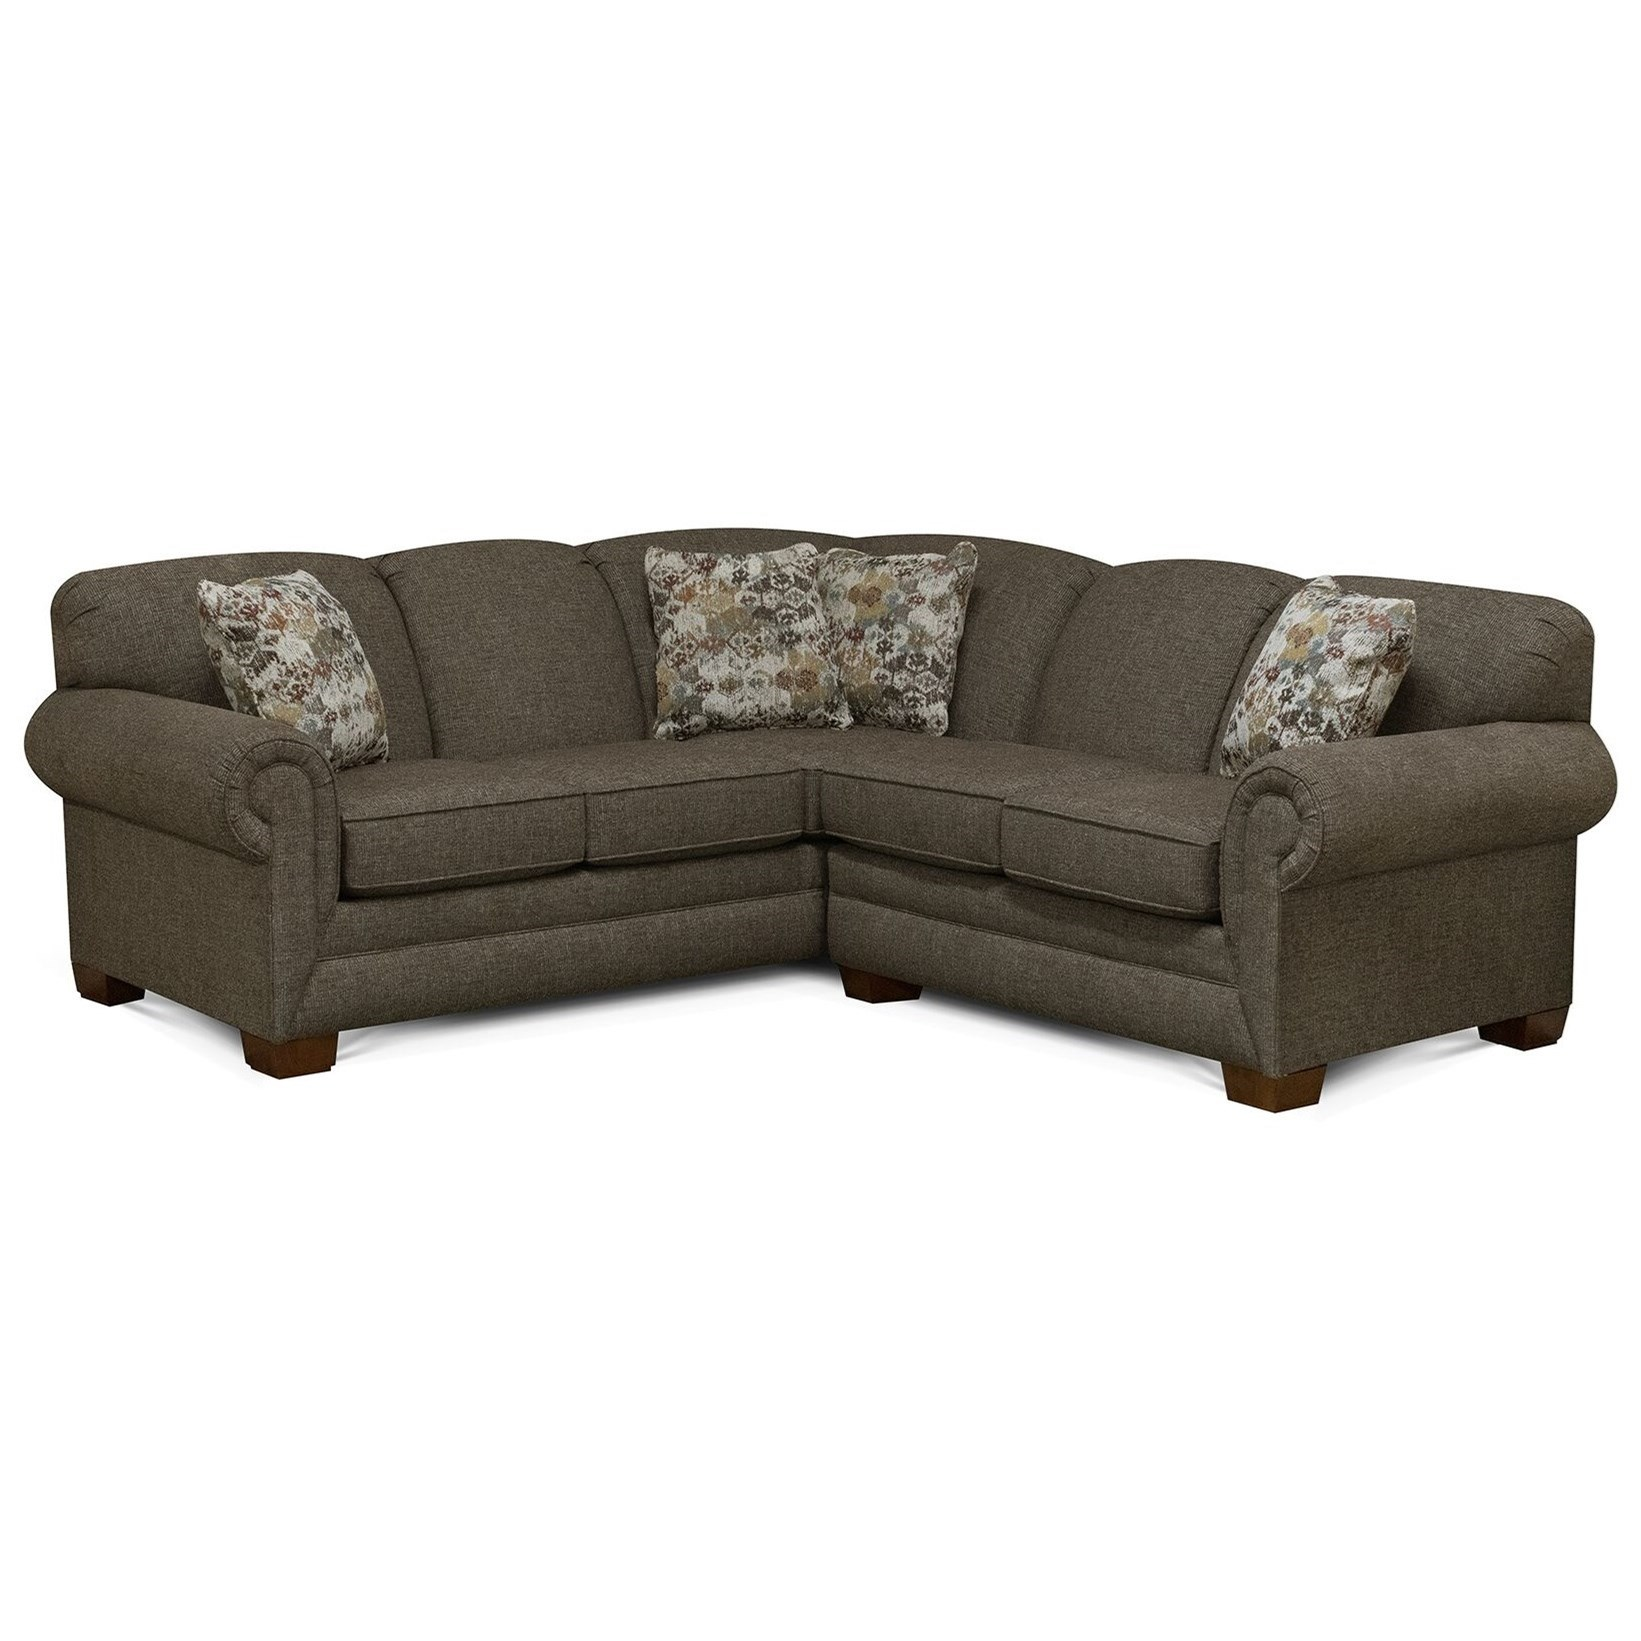 Monroe 2-Piece Sofa Sectional by England at Novello Home Furnishings